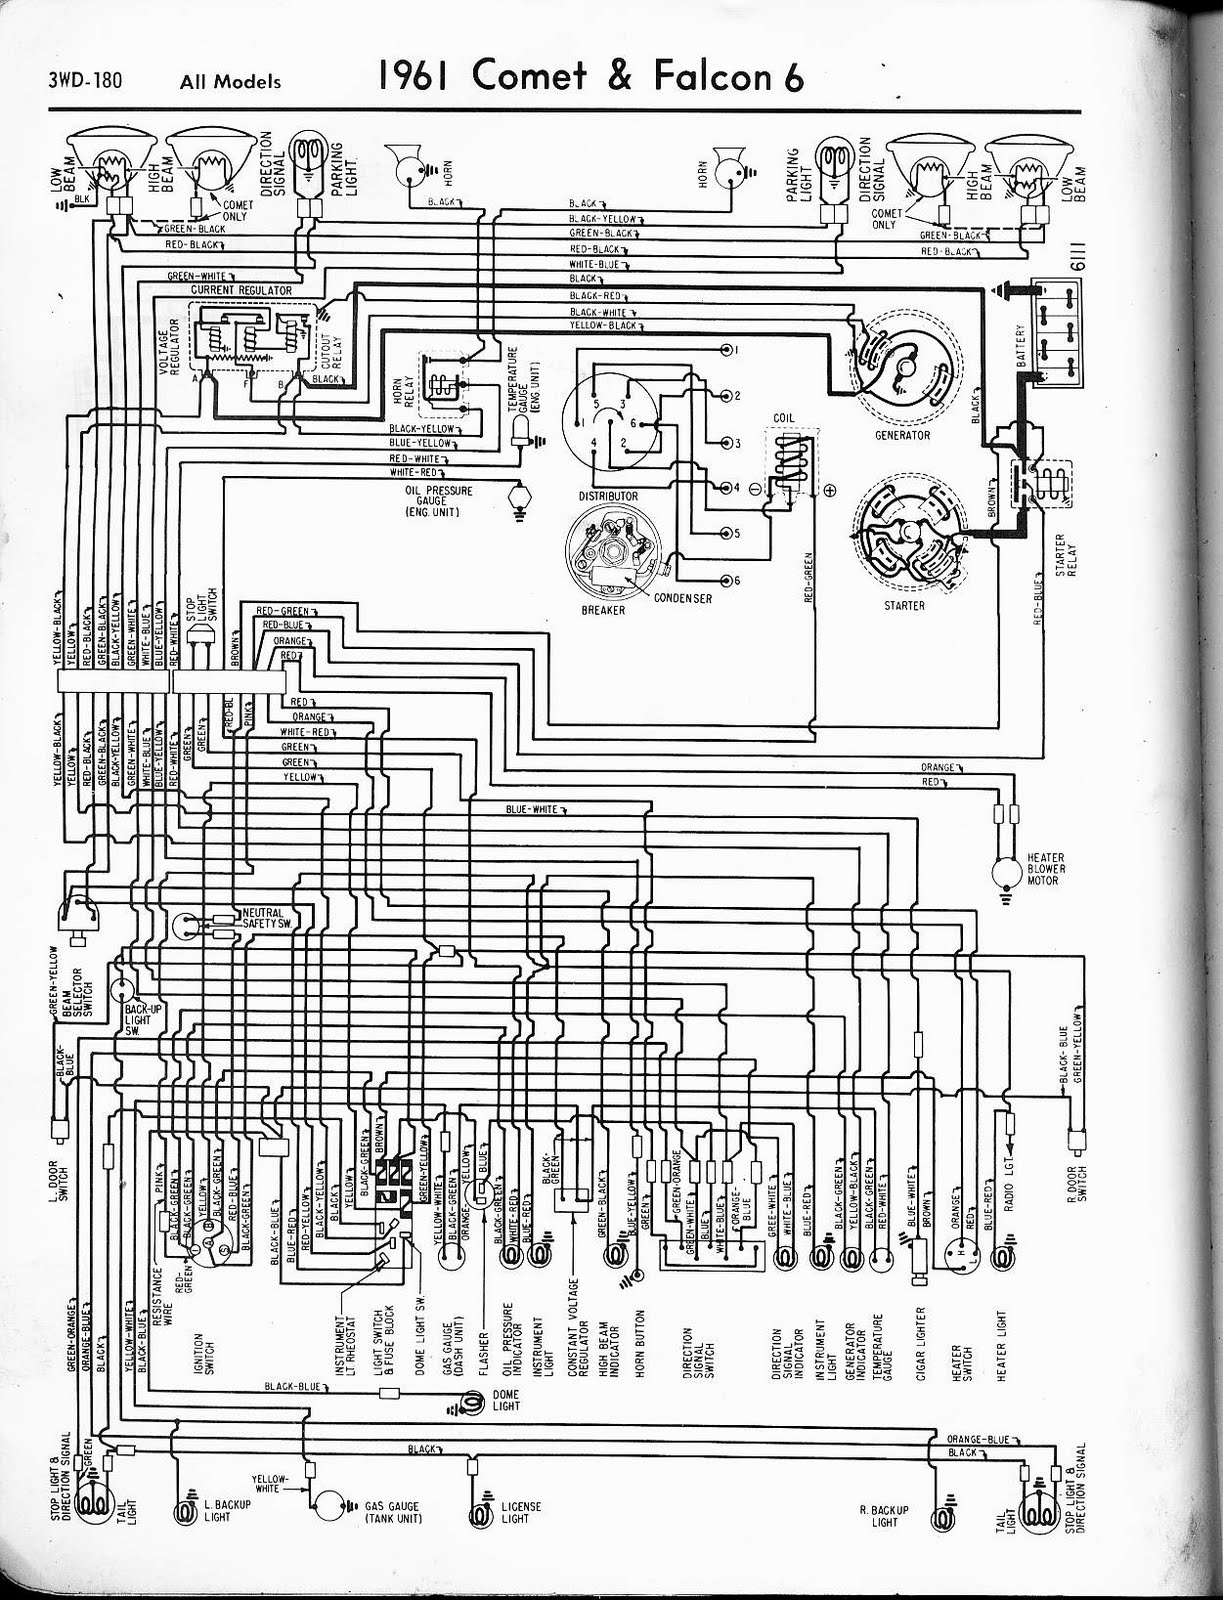 1964 ford falcon ignition switch wiring trusted wiring diagram 65 ford mustang ignition switch wiring 1964 [ 1223 x 1600 Pixel ]